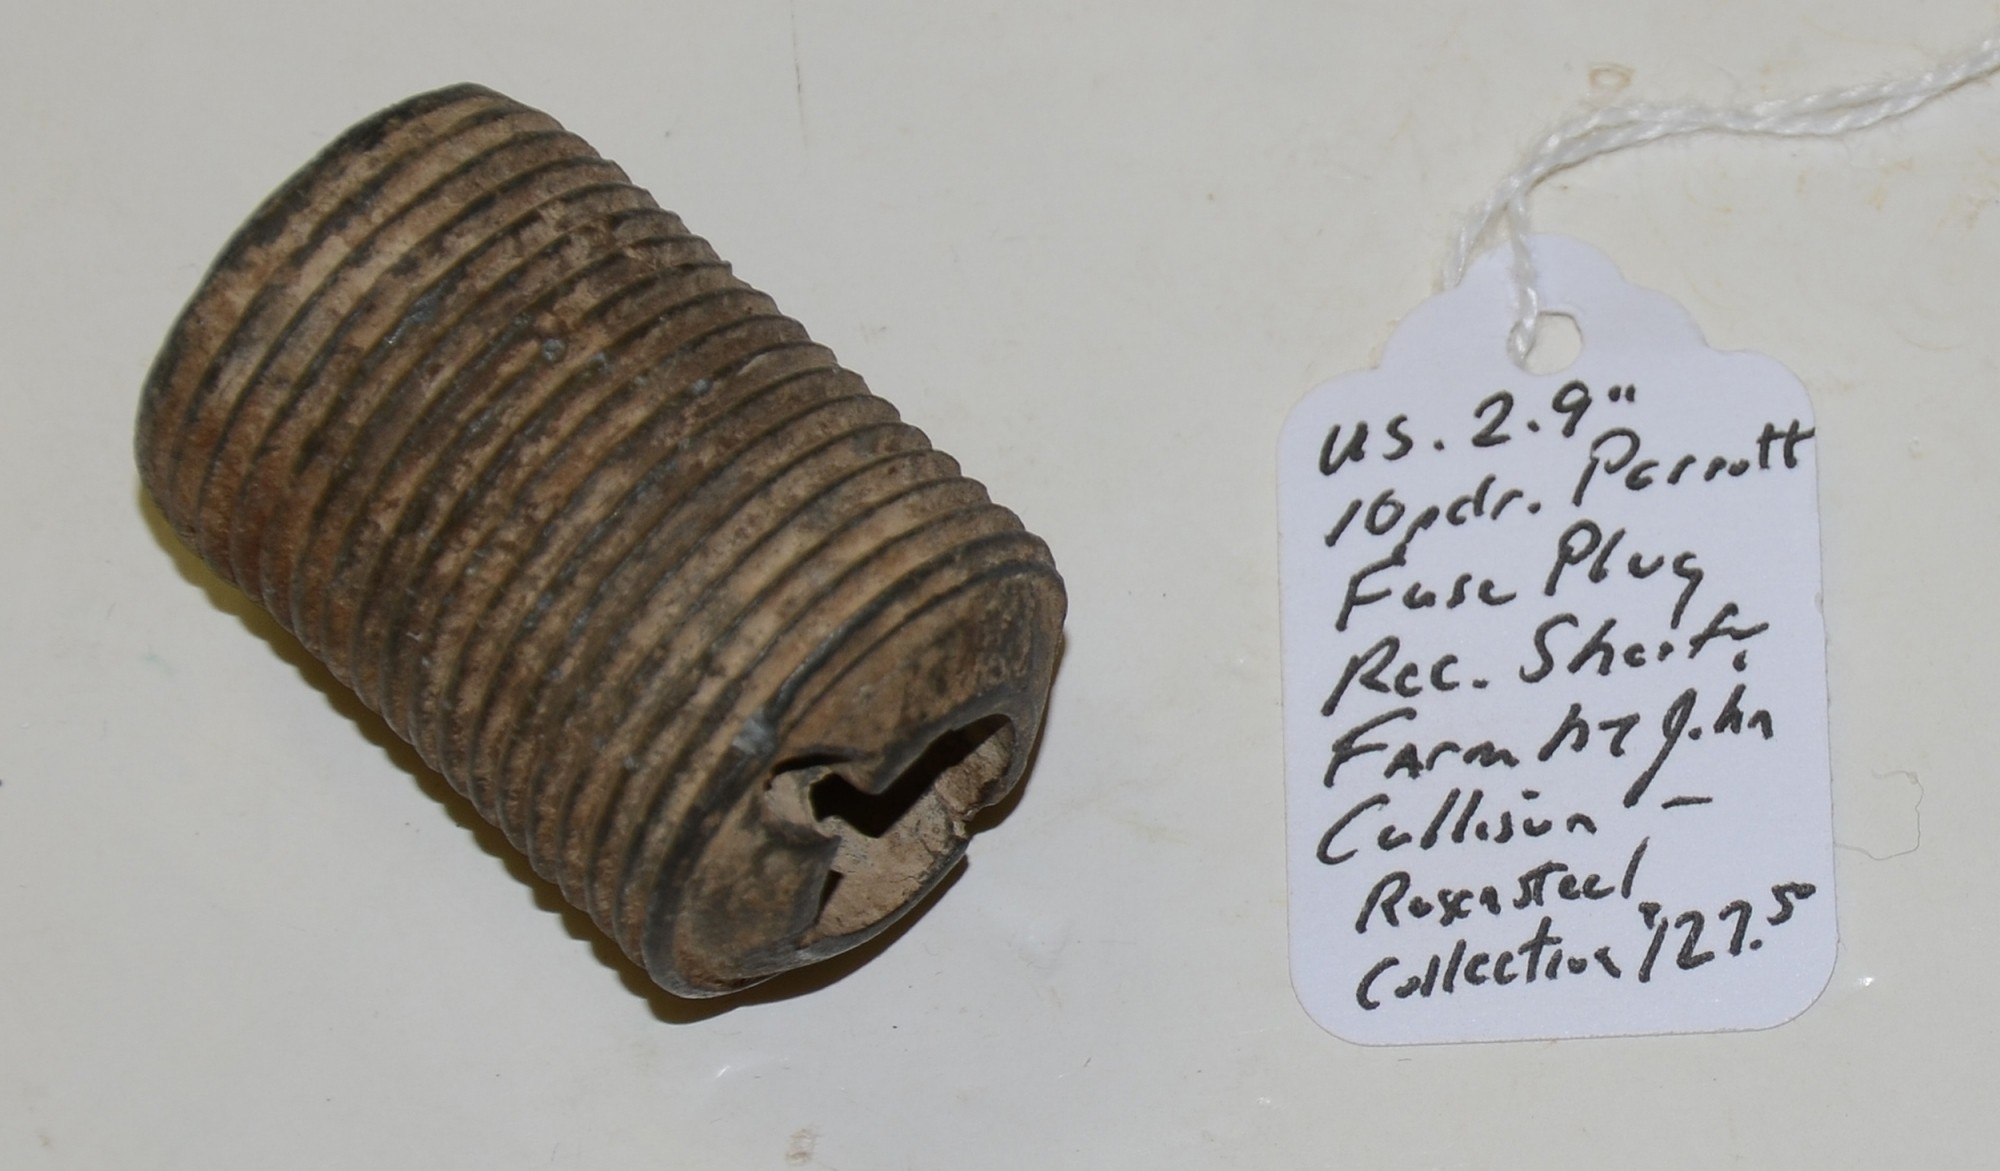 "US 2.9"" 10 PDR PARROTT FUSE PLUG RECOVERED ON THE SHERFY FARM, GETTYSBURG"